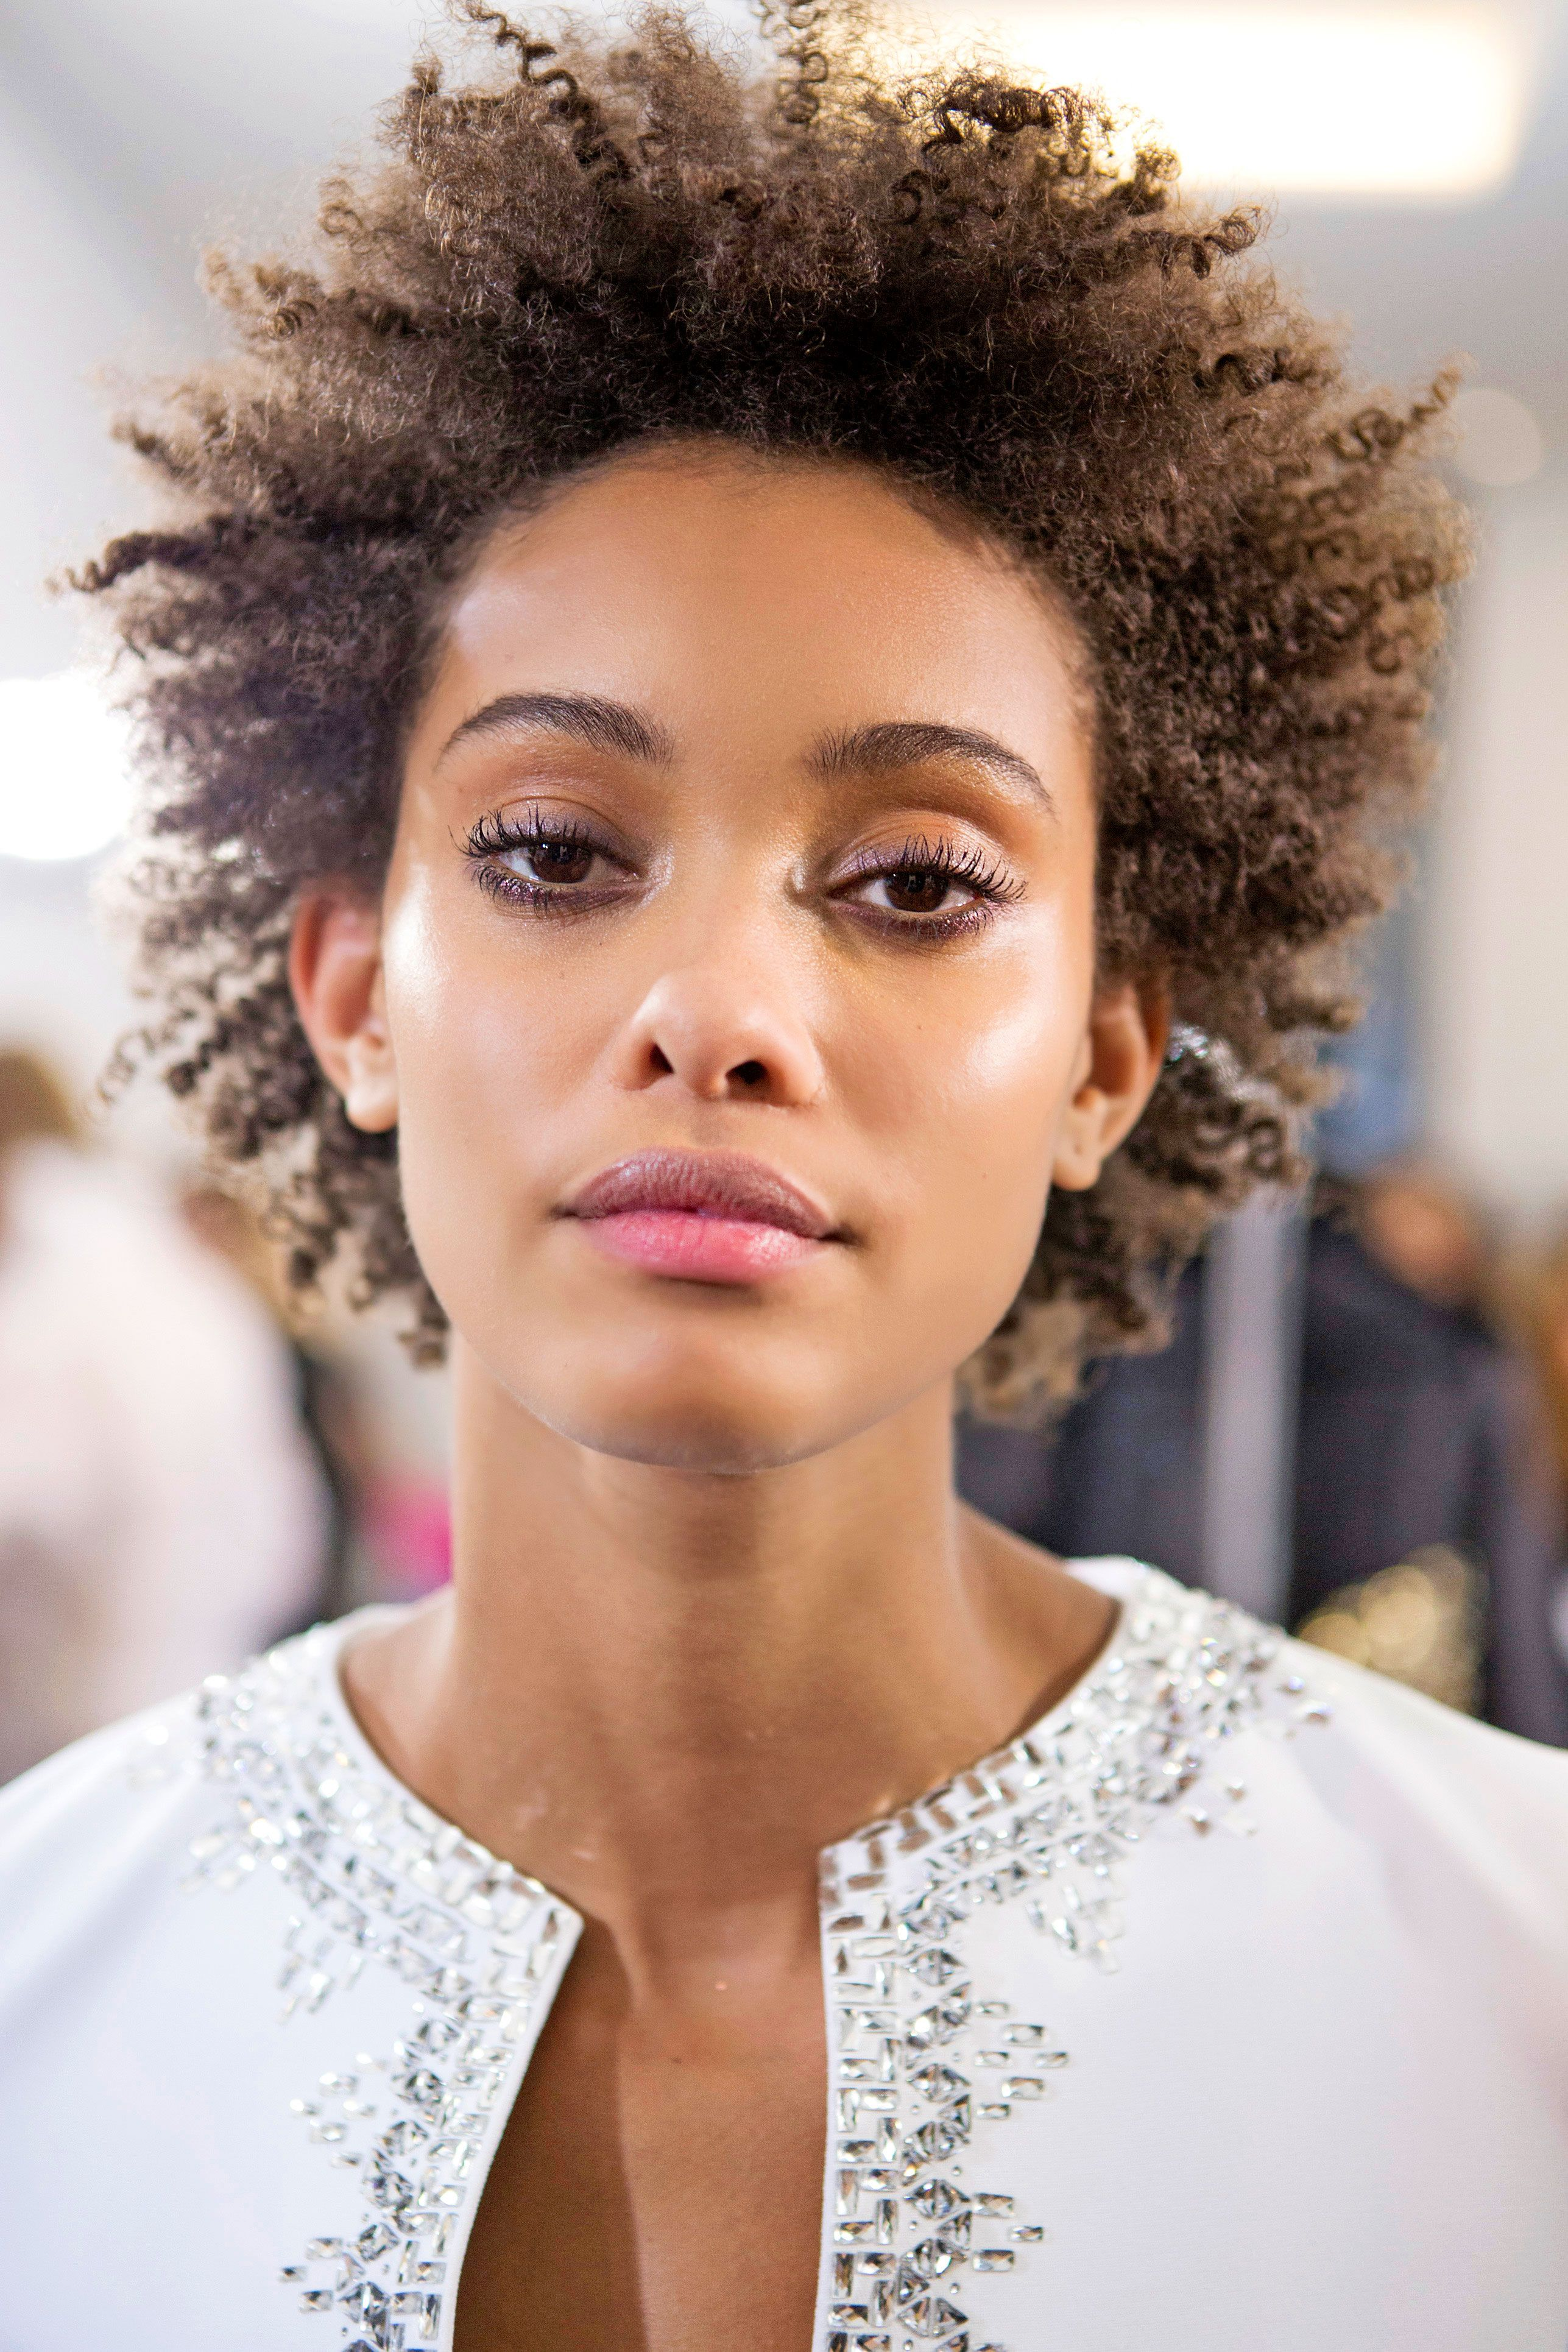 How To Apply Castor Oil To Eyelashes For Growth